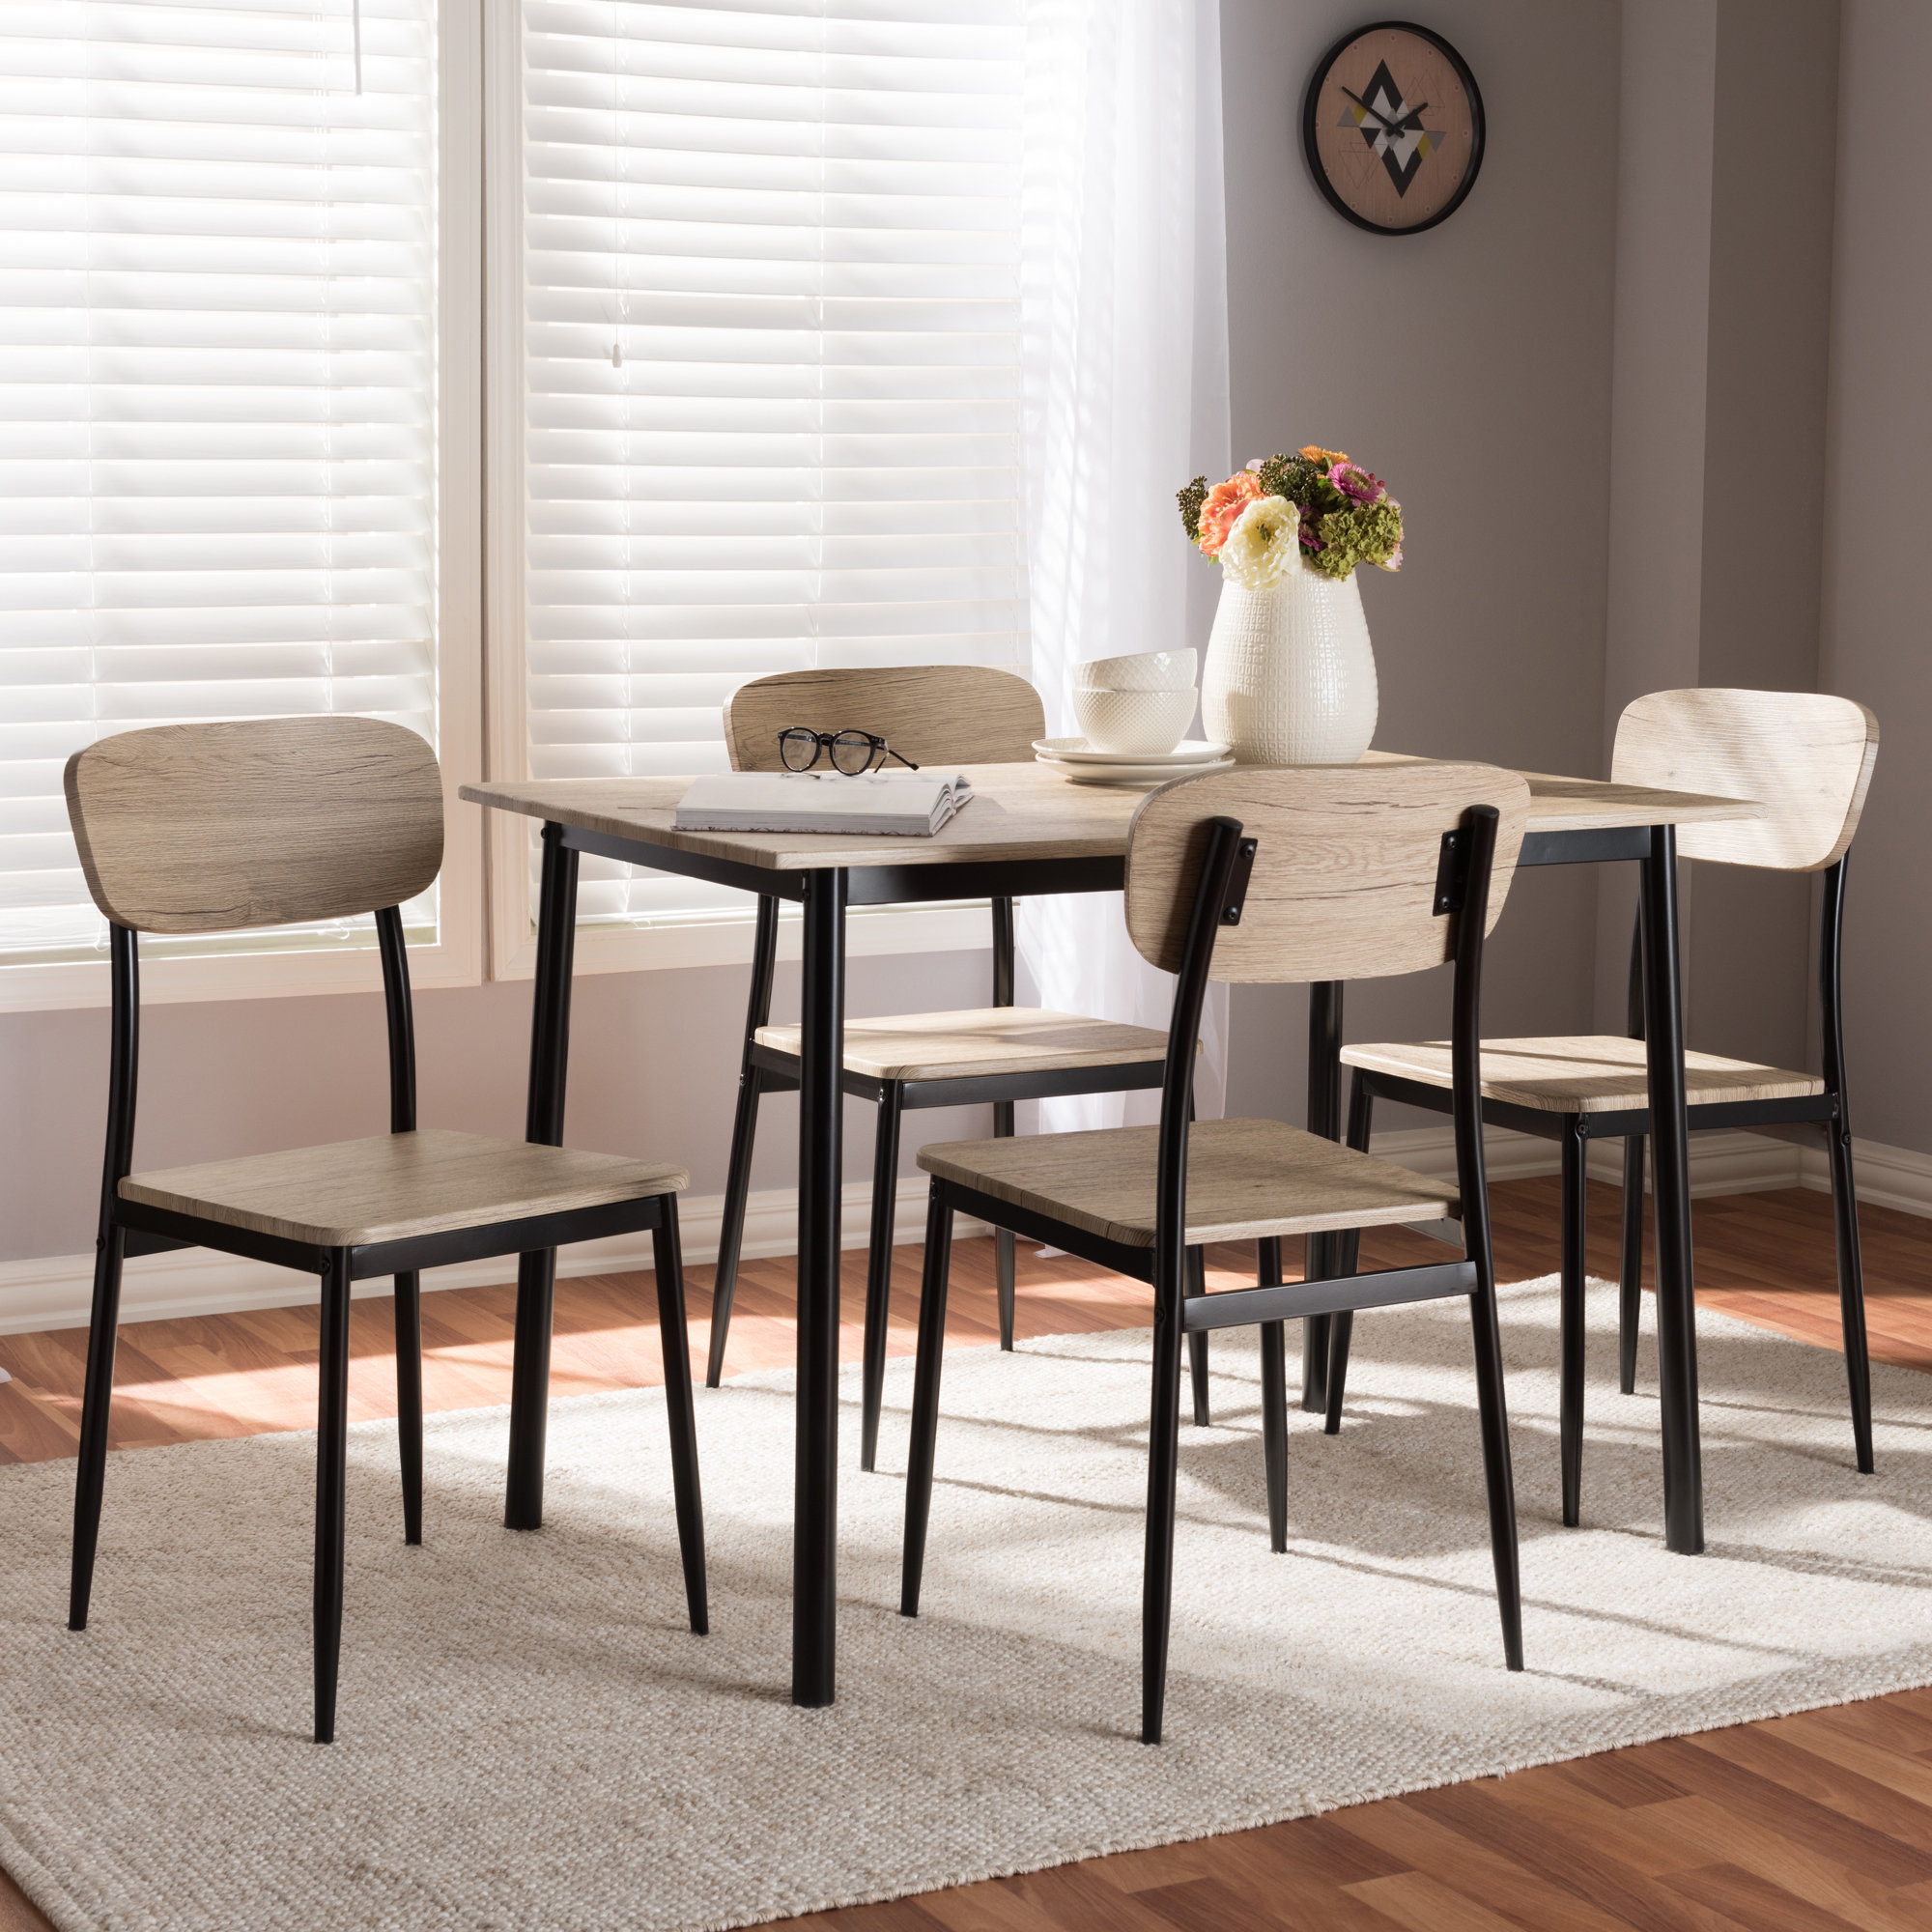 Most Popular Wiggs 5 Piece Dining Sets Within Wiggs 5 Piece Dining Set (View 2 of 25)